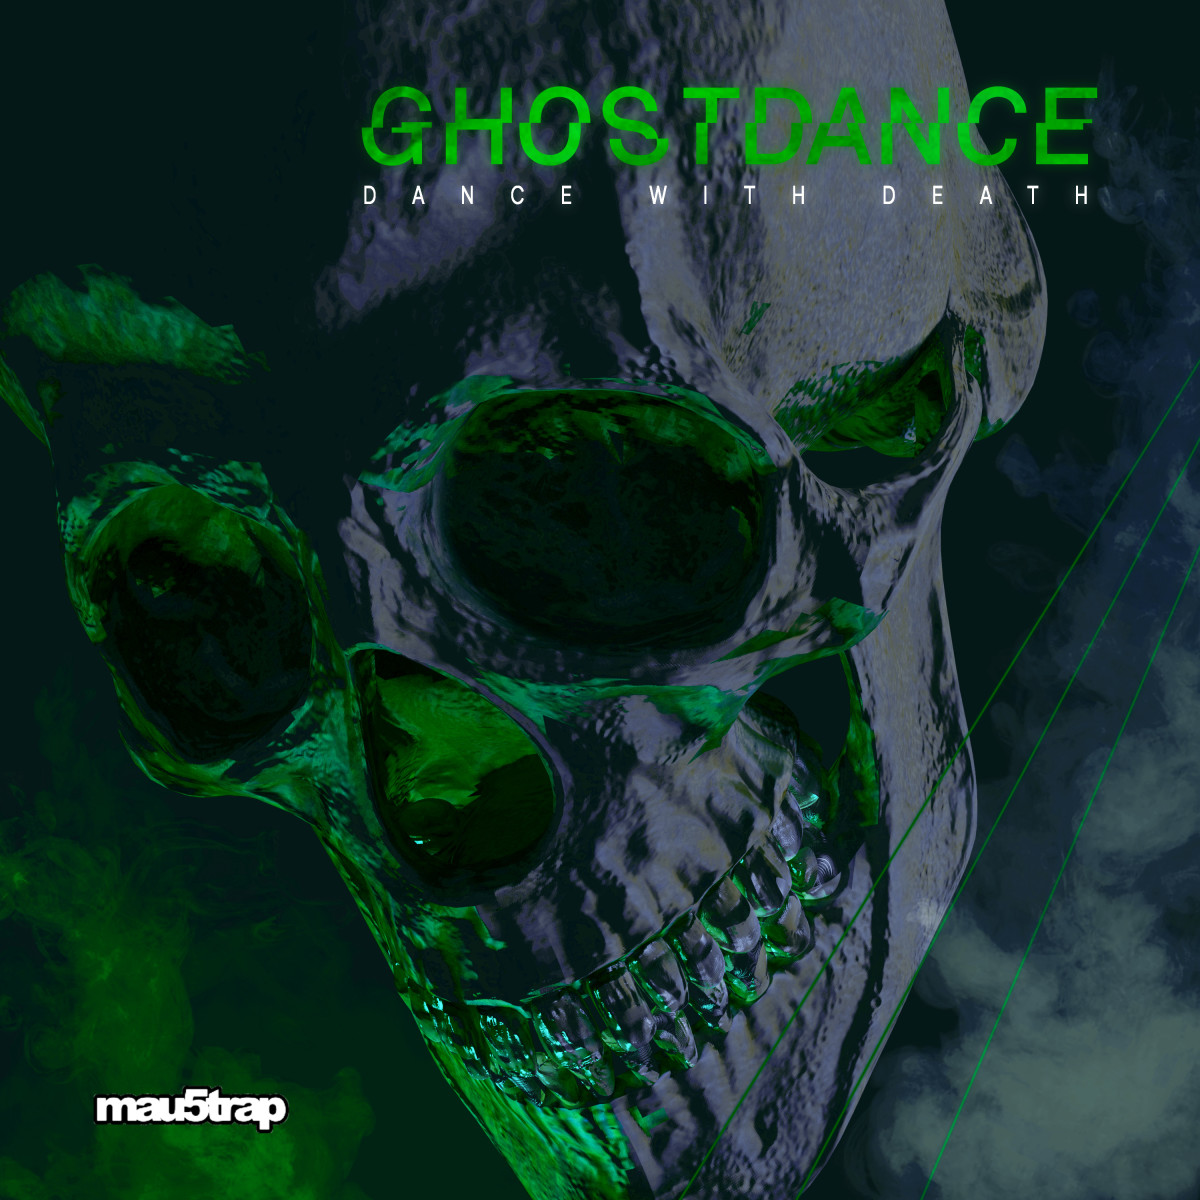 Ghost Dance - Dance With Death EP -Mau5trap records